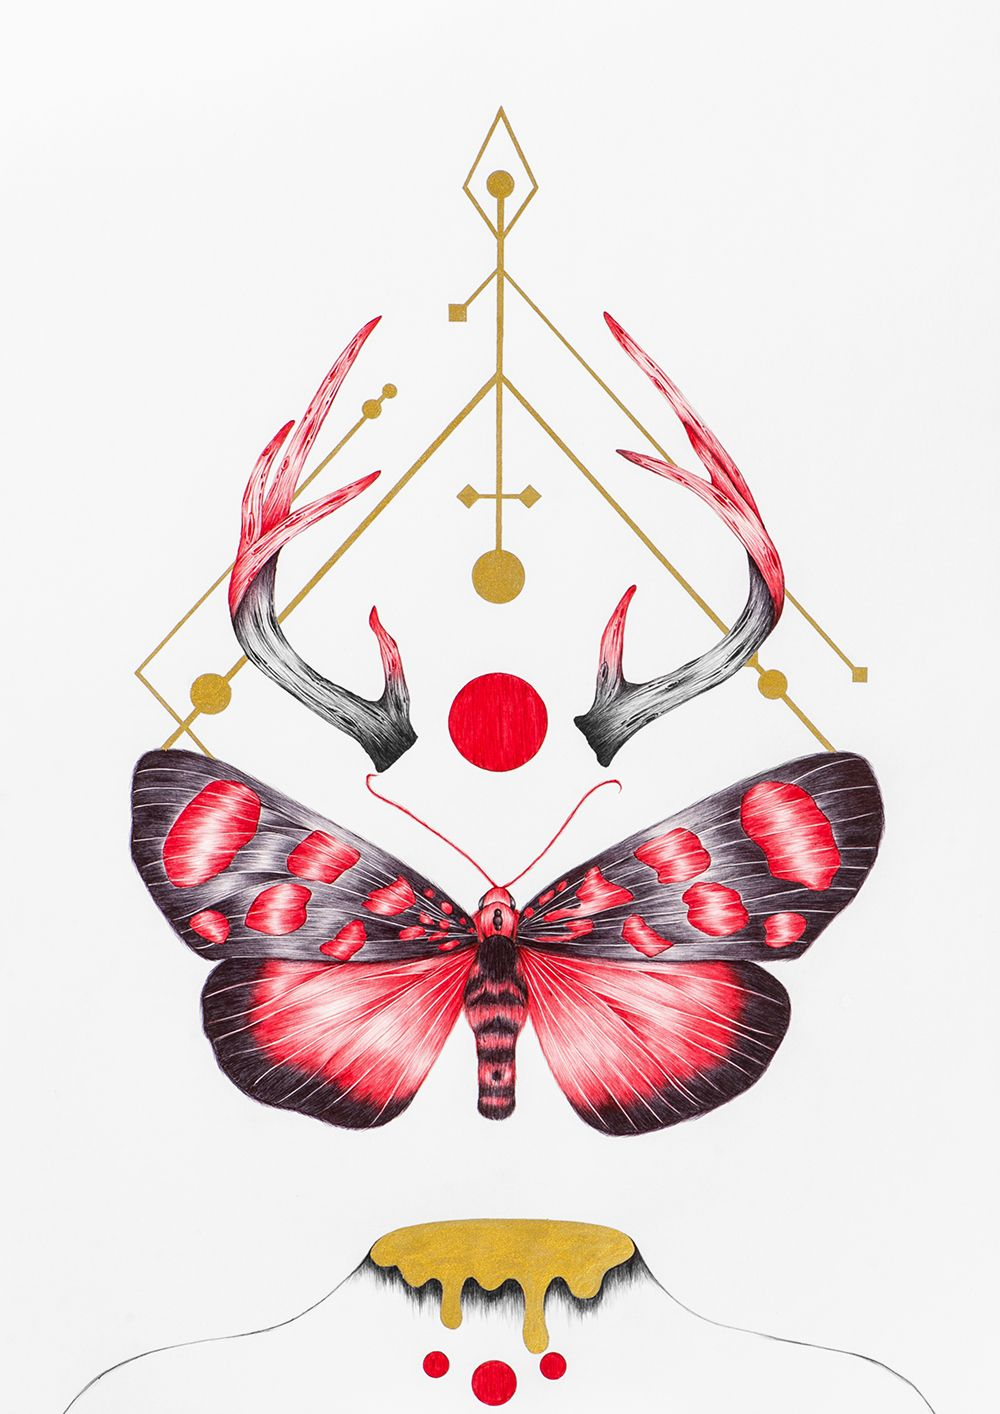 Transformation - Solo Show by Peony Yip on Behance